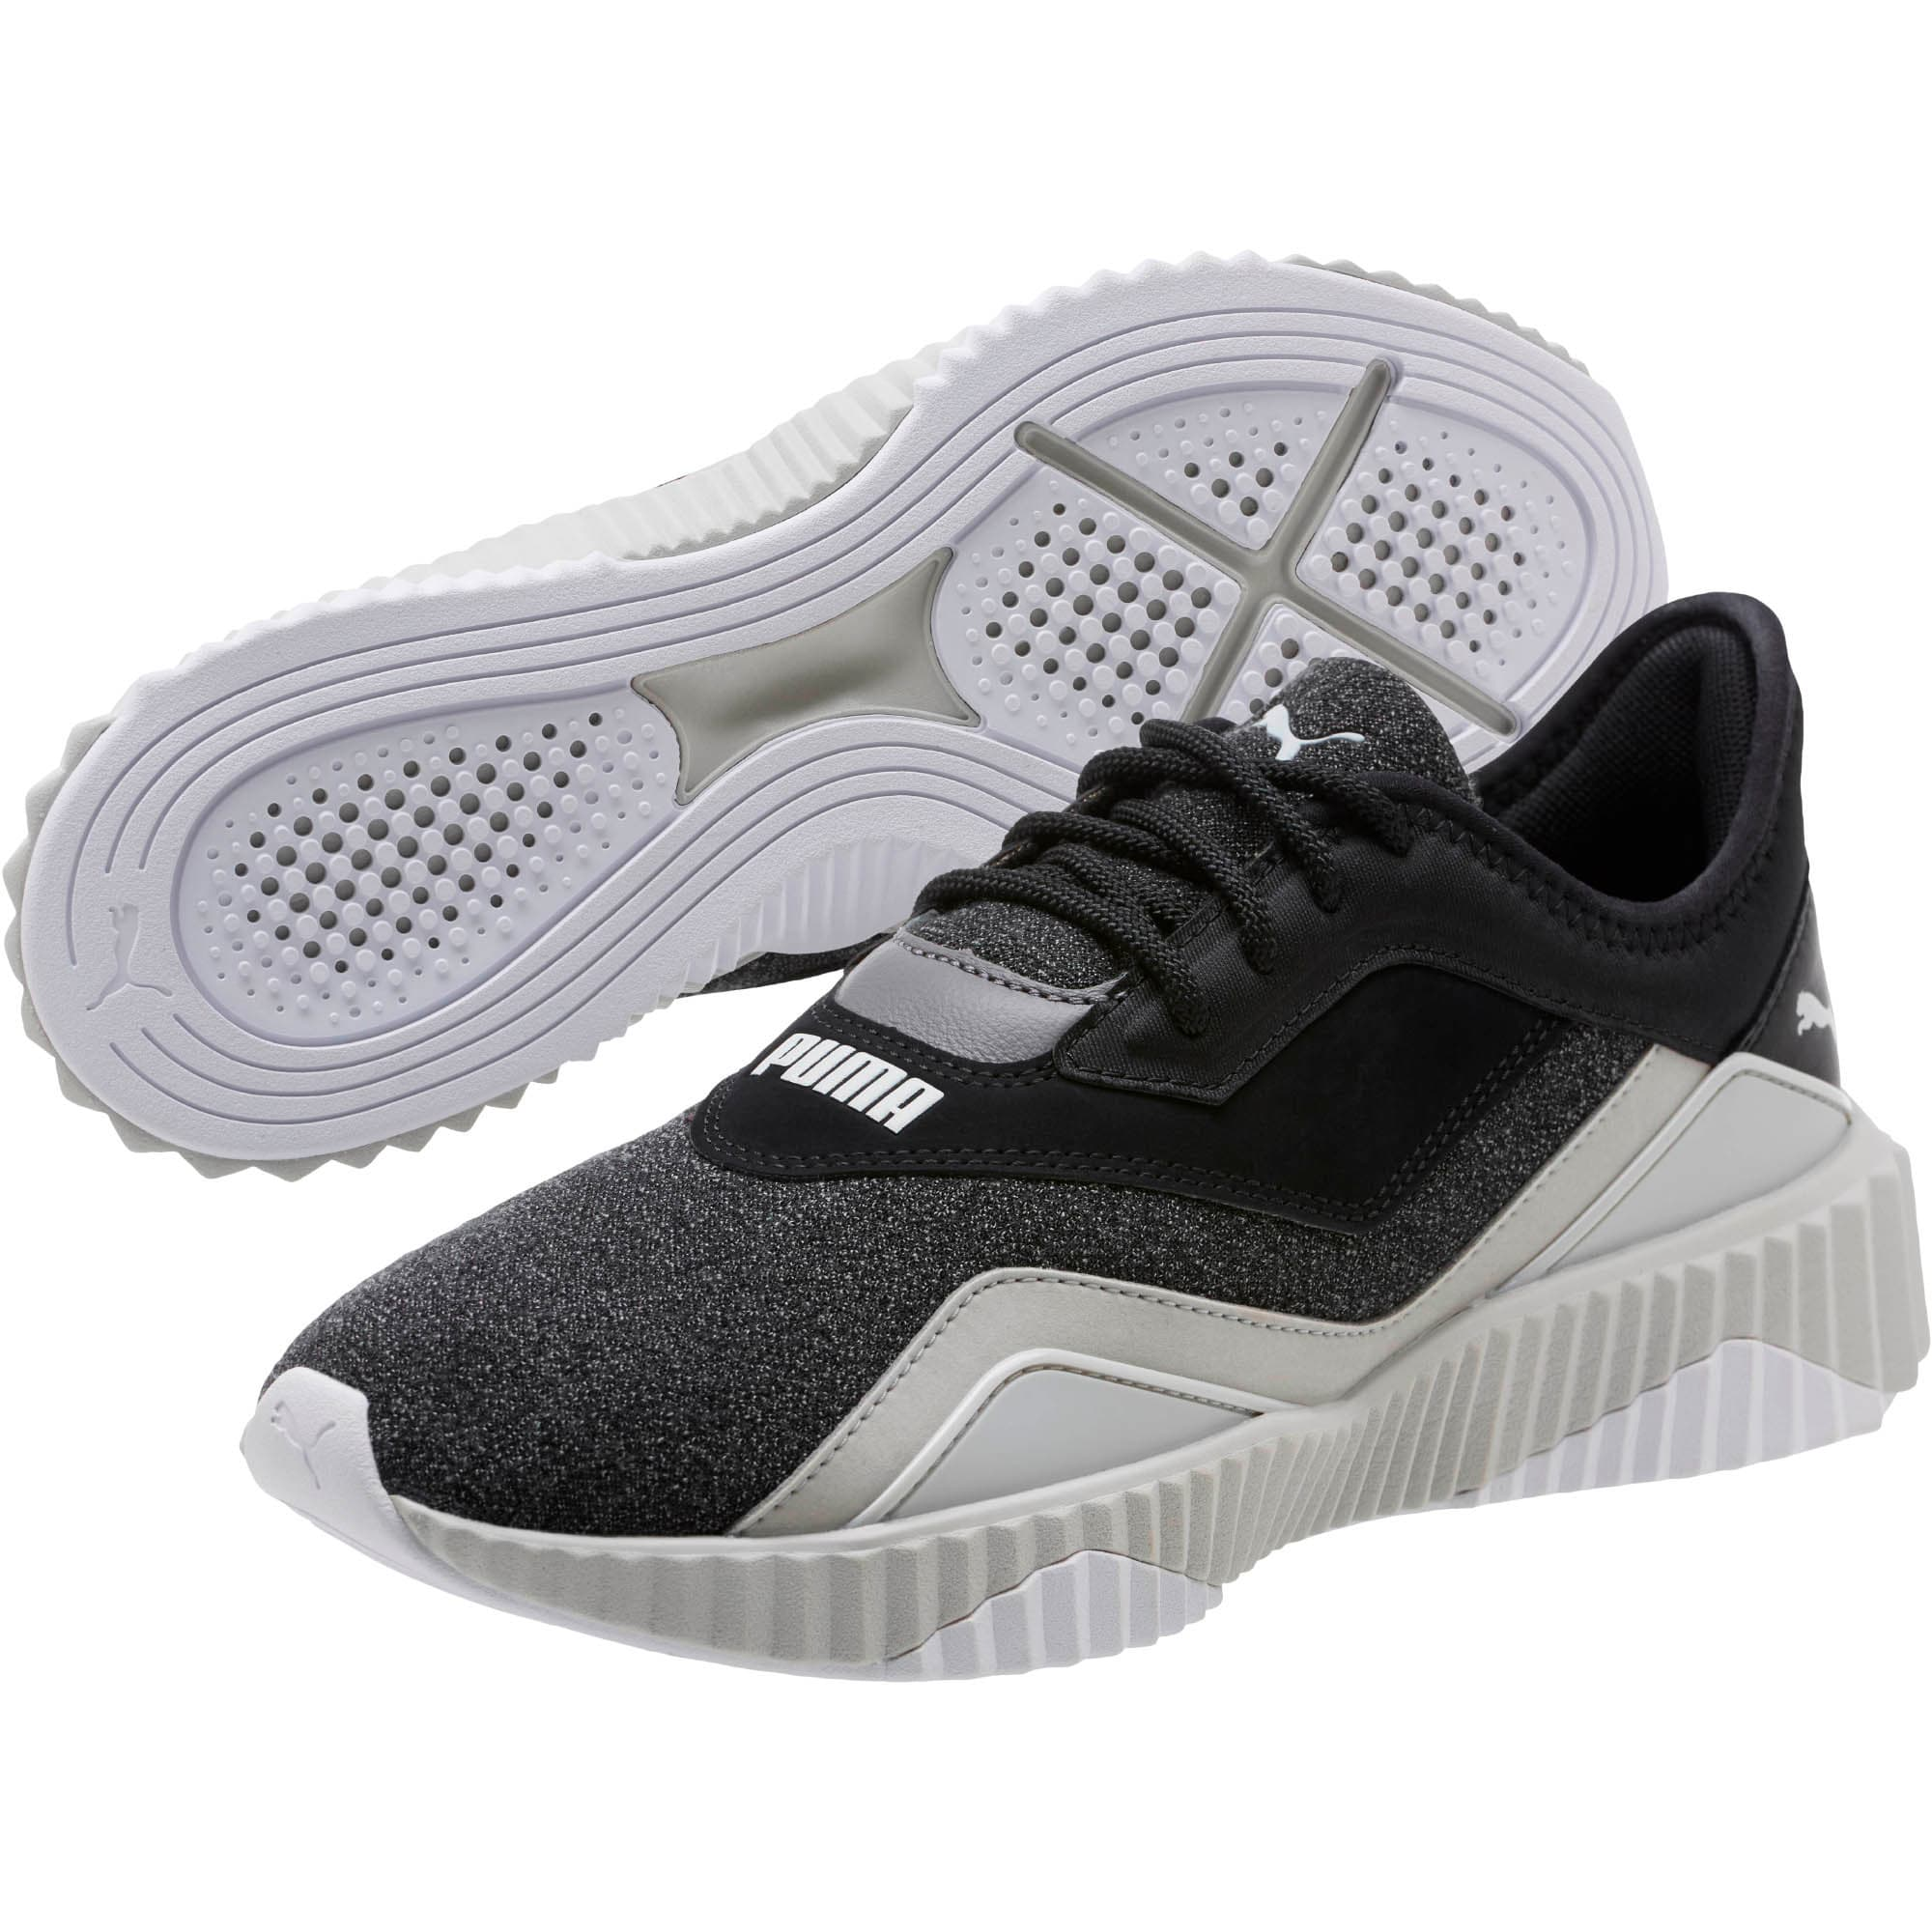 Thumbnail 2 of Defy Stitched Z Women's Training Shoes, Puma Black-Glacier Gray, medium